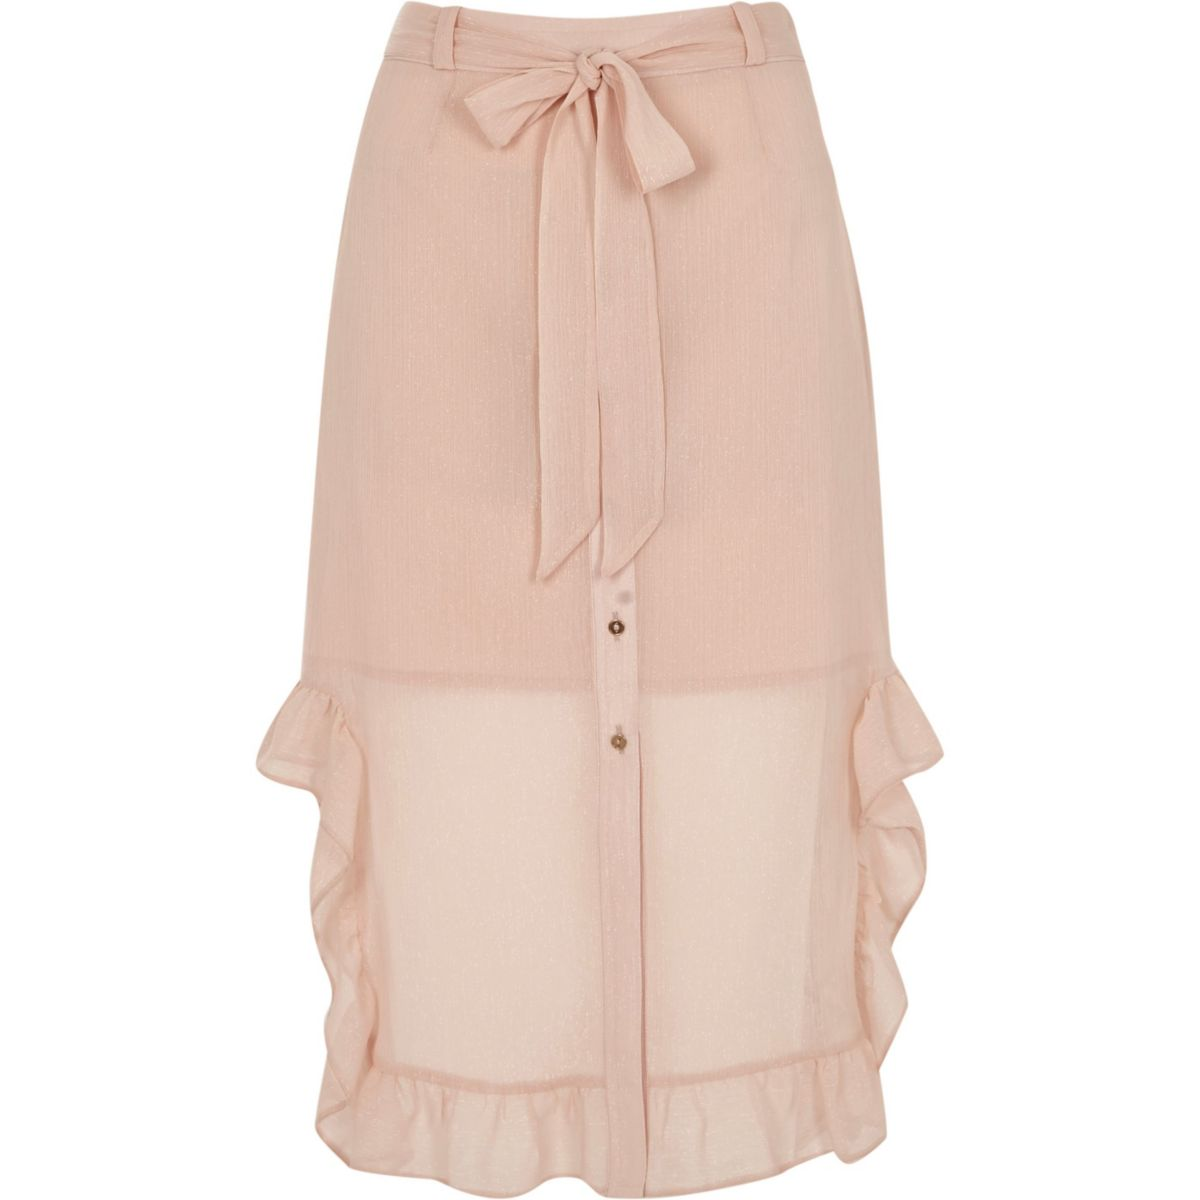 Light pink chiffon frill hem button-up skirt